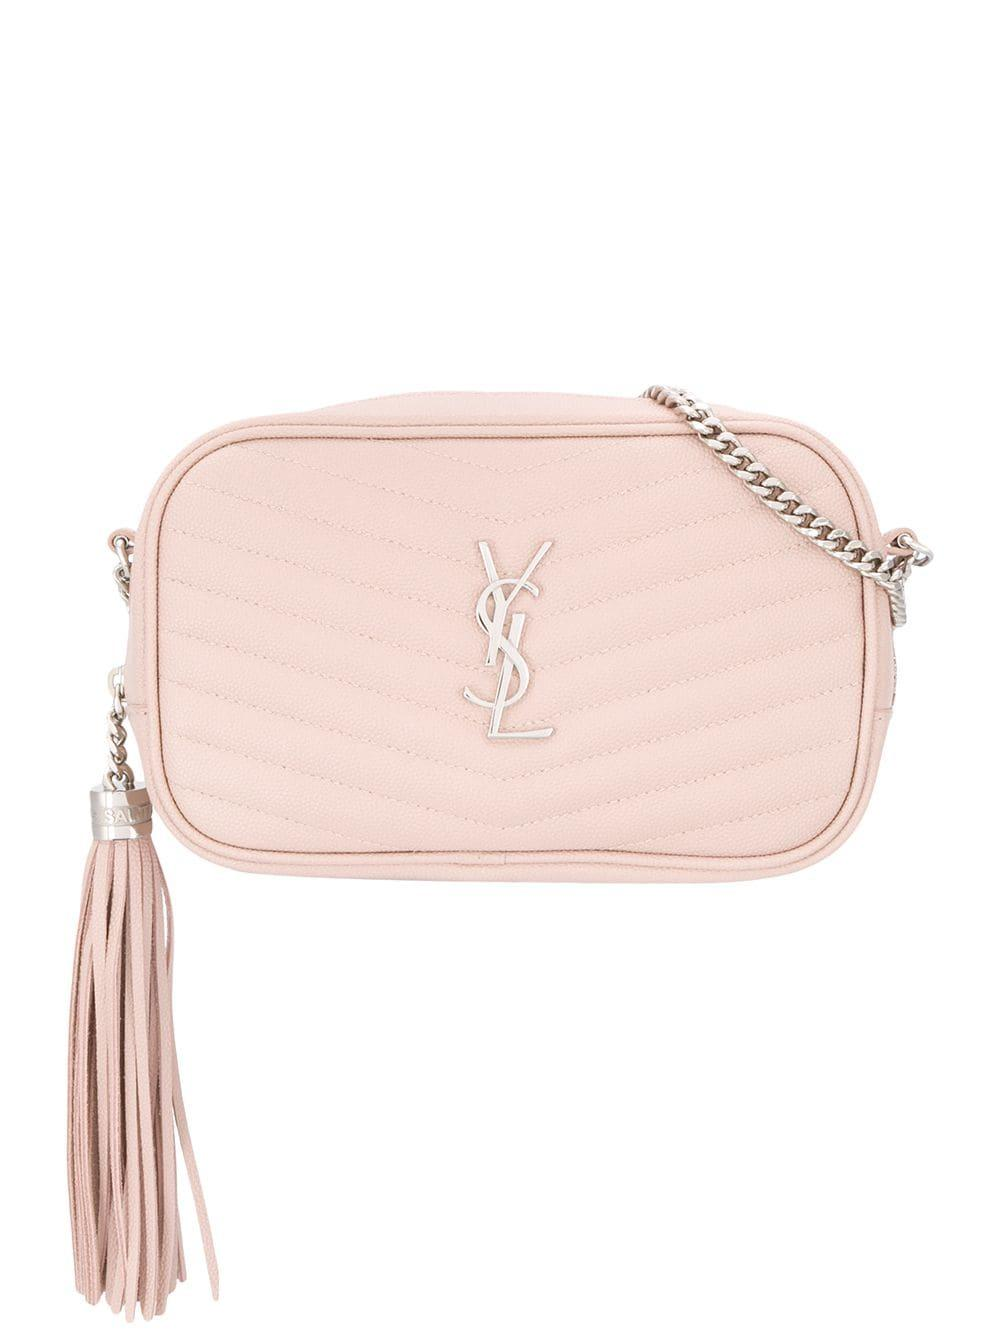 Mini Bag Mono Bag With Tassel